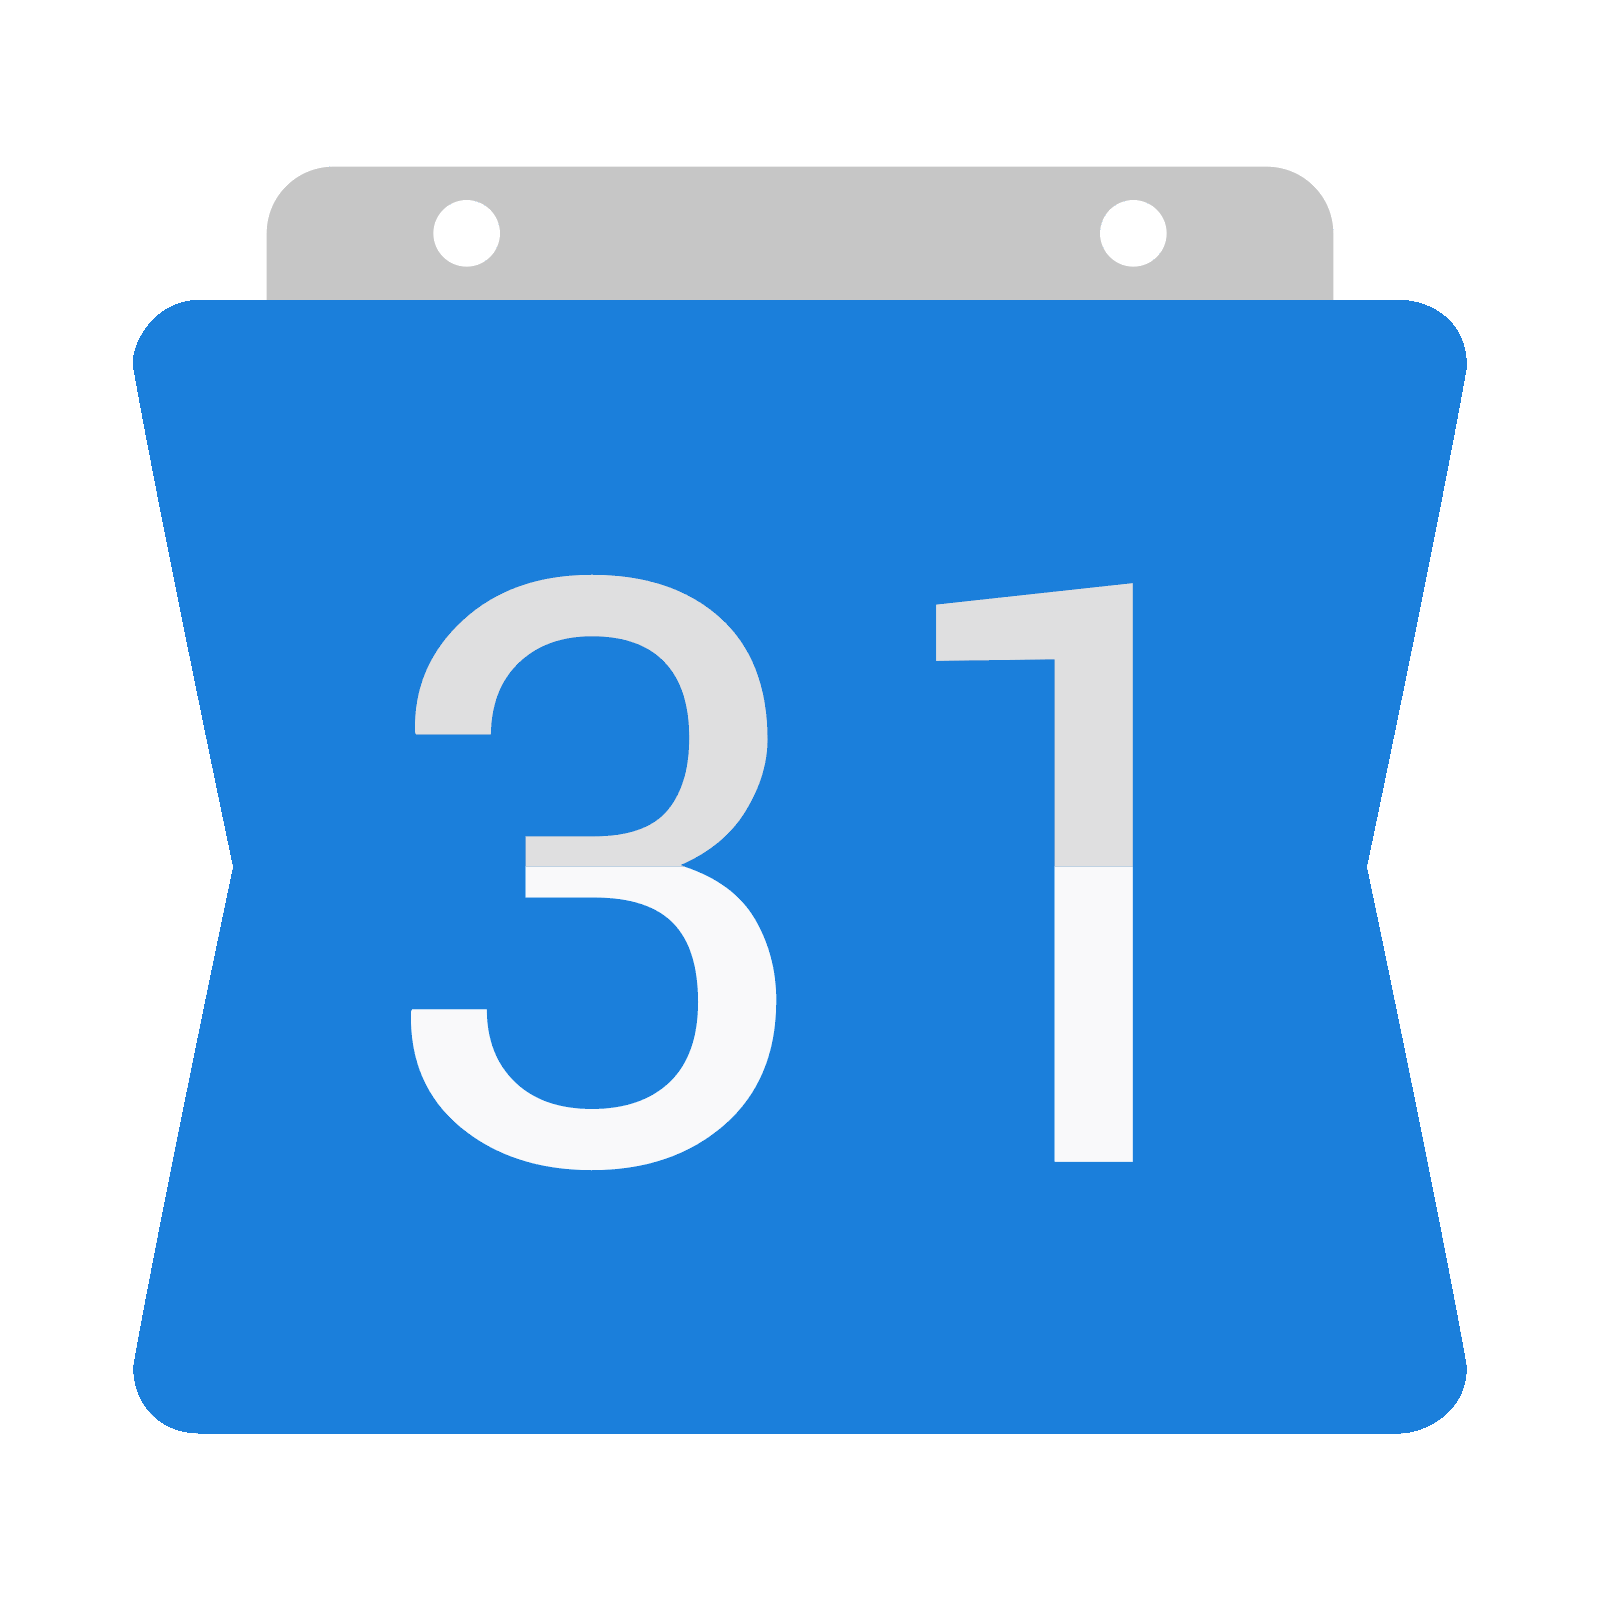 google-calendar-icon-png.png